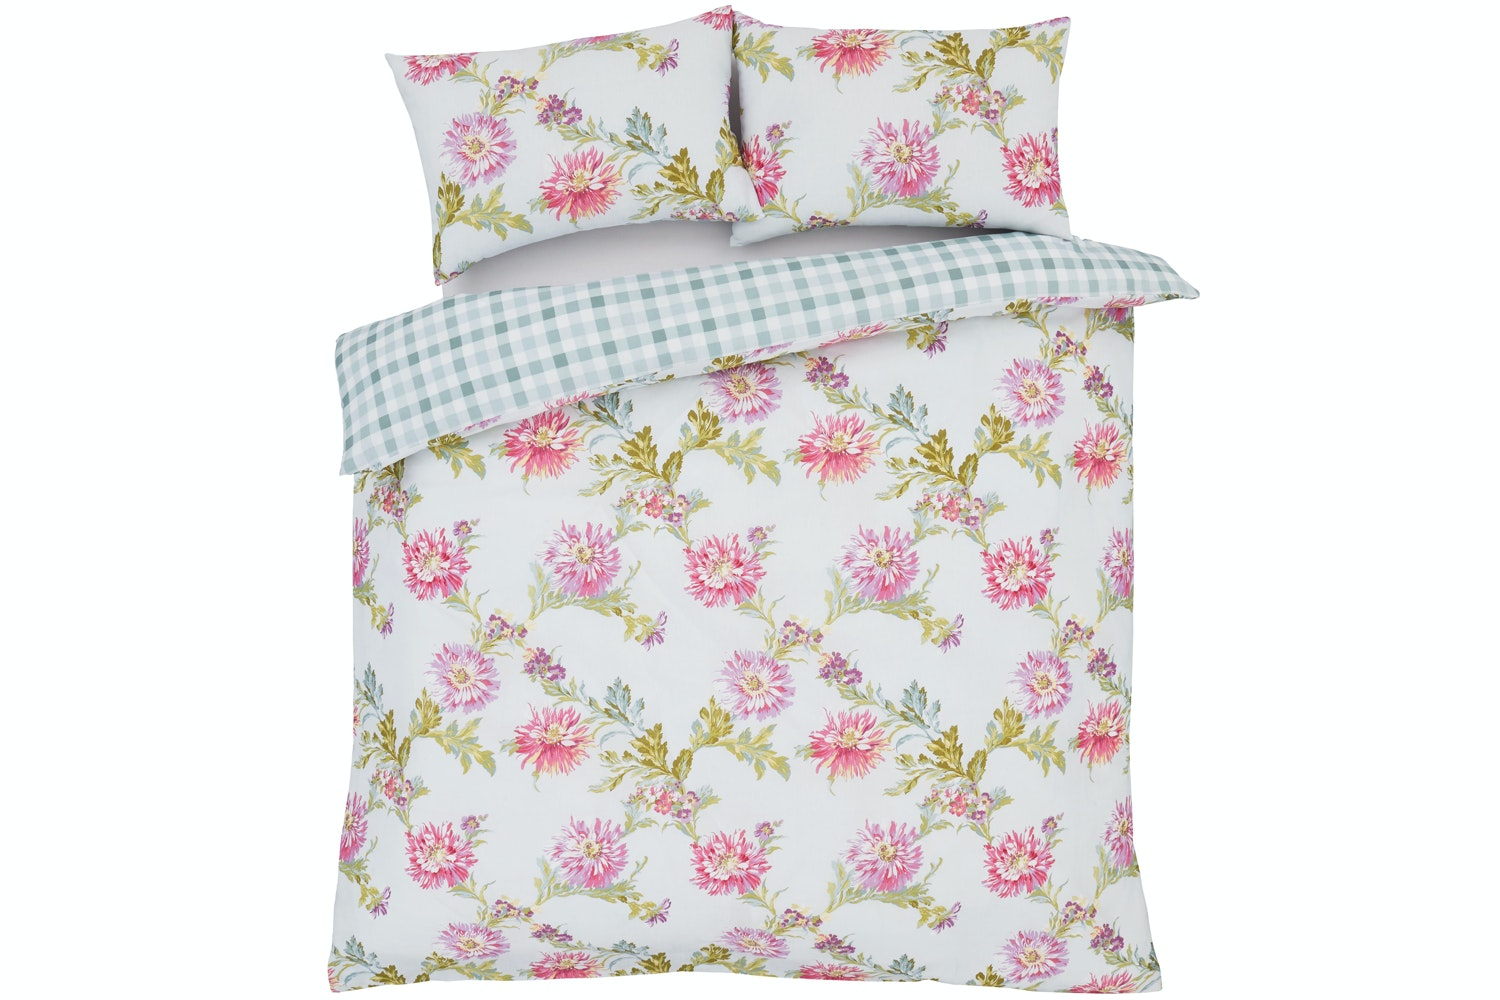 Chrysanthemum Check Duckegg Duvet Cover Set | King